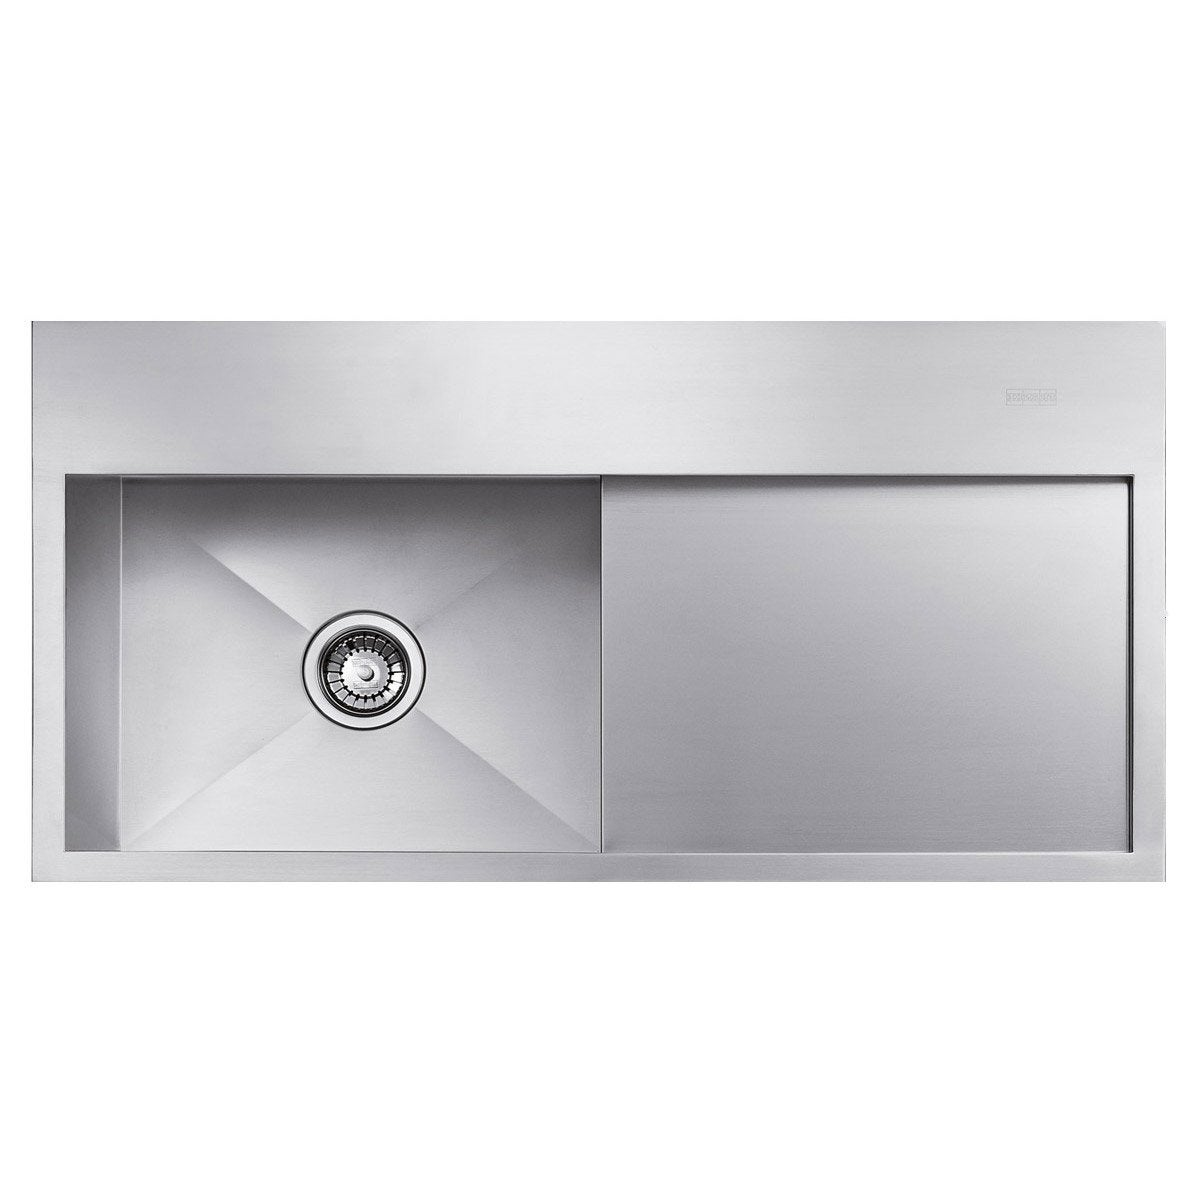 Evier inox leroy merlin maison design for Evier inox design